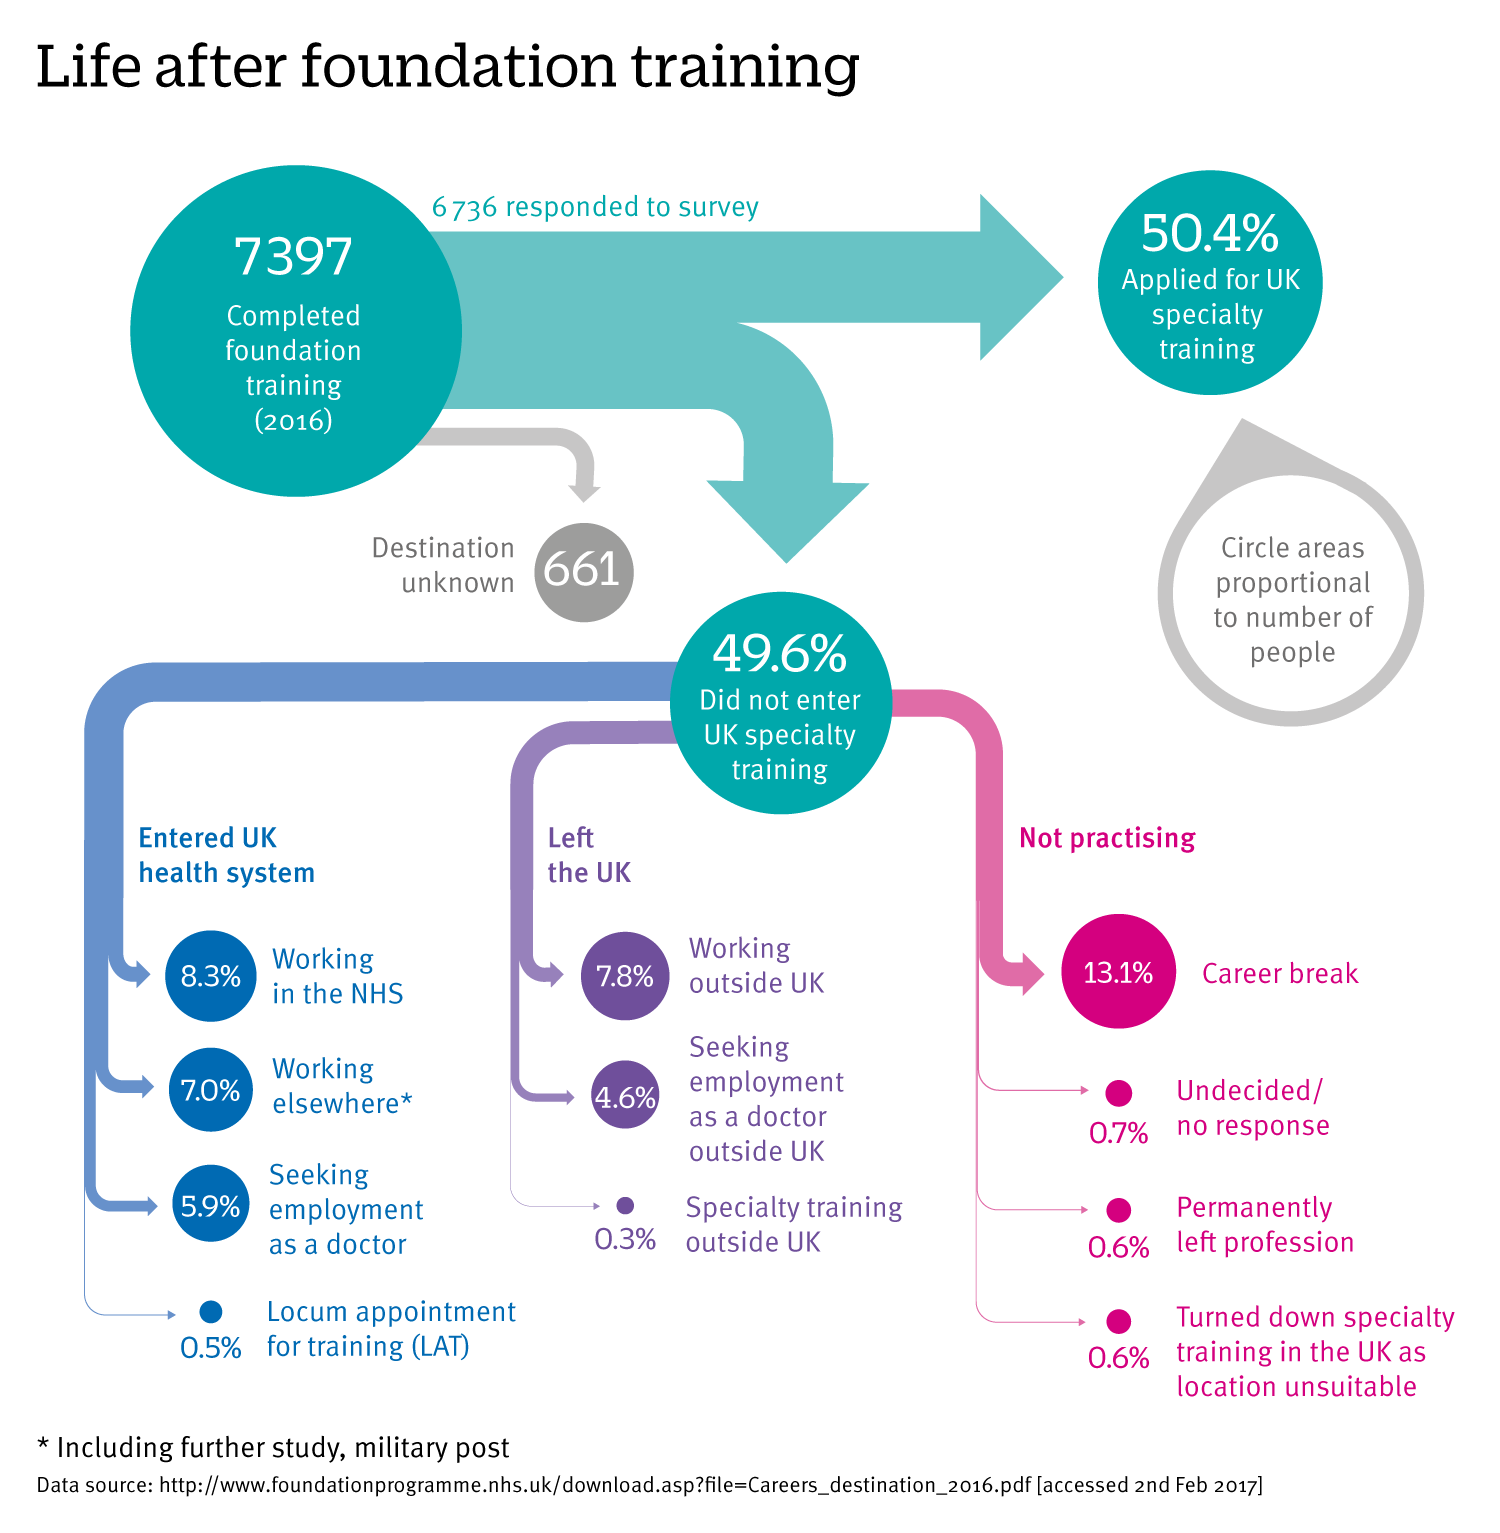 Where uk trainees went after completing foundation training in where uk trainees went after completing foundation training in 2016 xflitez Choice Image